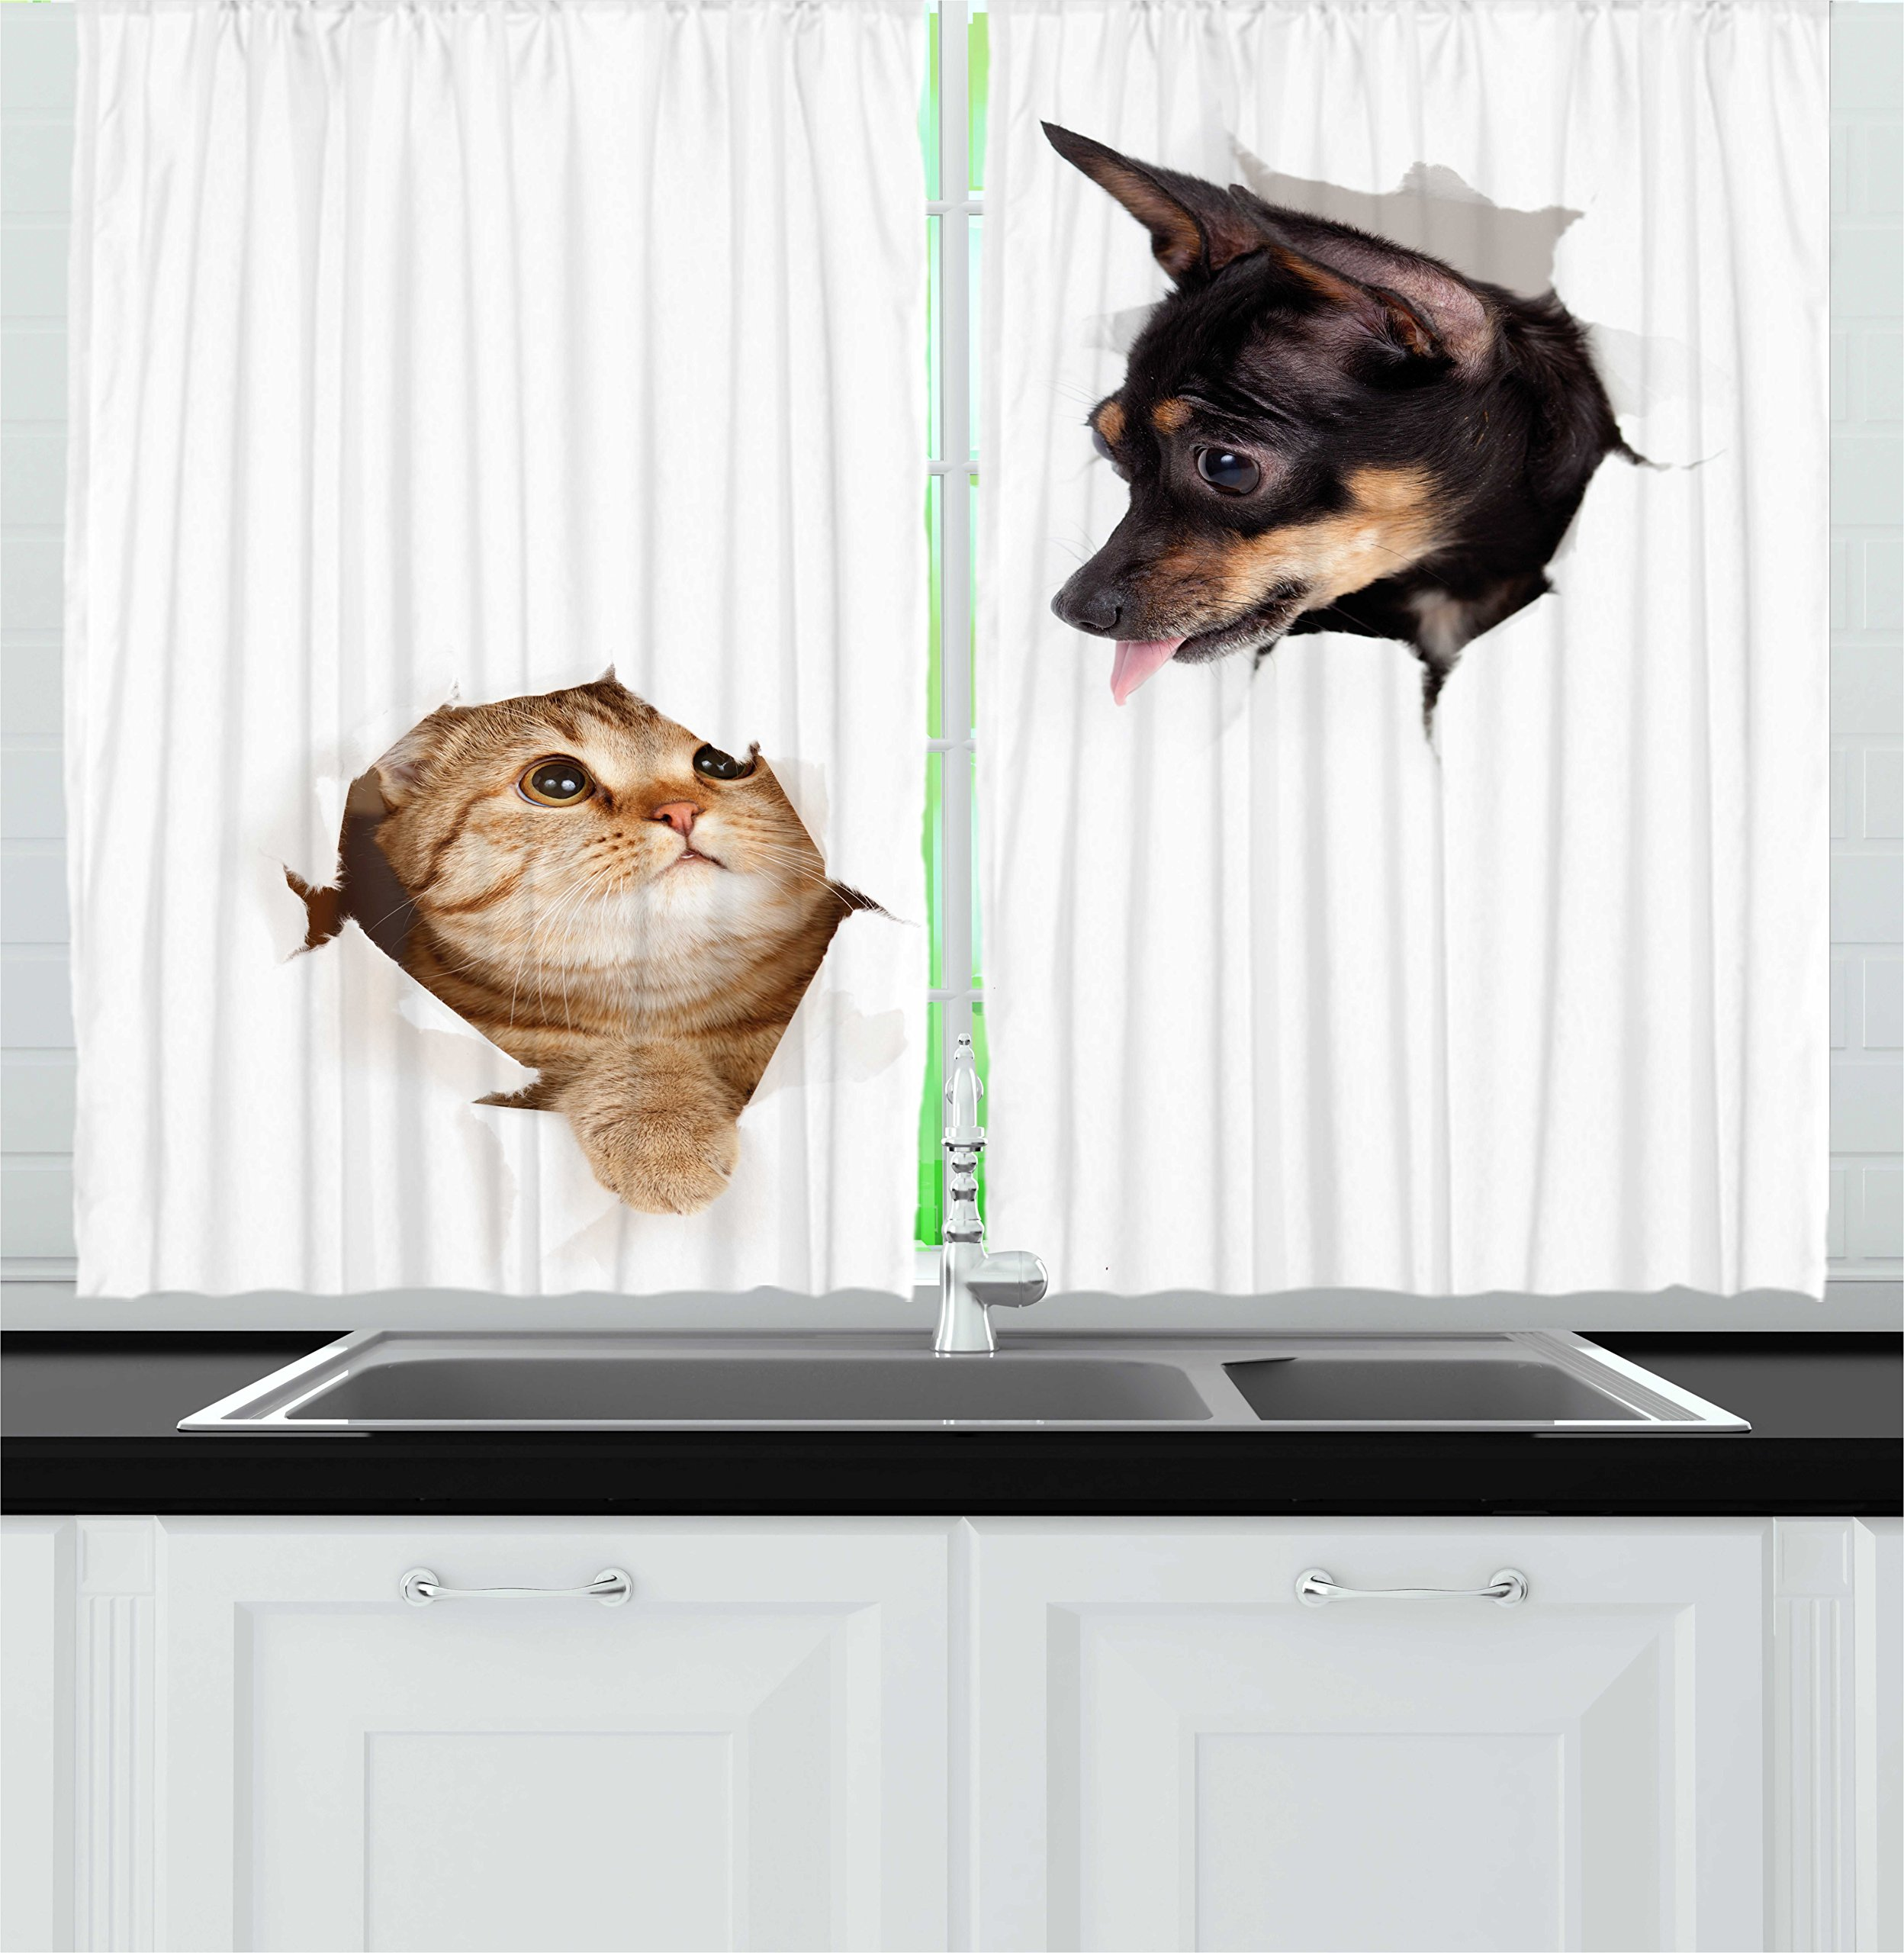 Ambesonne Animal Kitchen Curtains, Cat and Dog In Paper Side Torn Holes Funny Kitten and Puppy Photo Print, Window Drapes 2 Panels Set for Kitchen Cafe, 55W X 39L Inches, White Black and Brown by Ambesonne (Image #1)